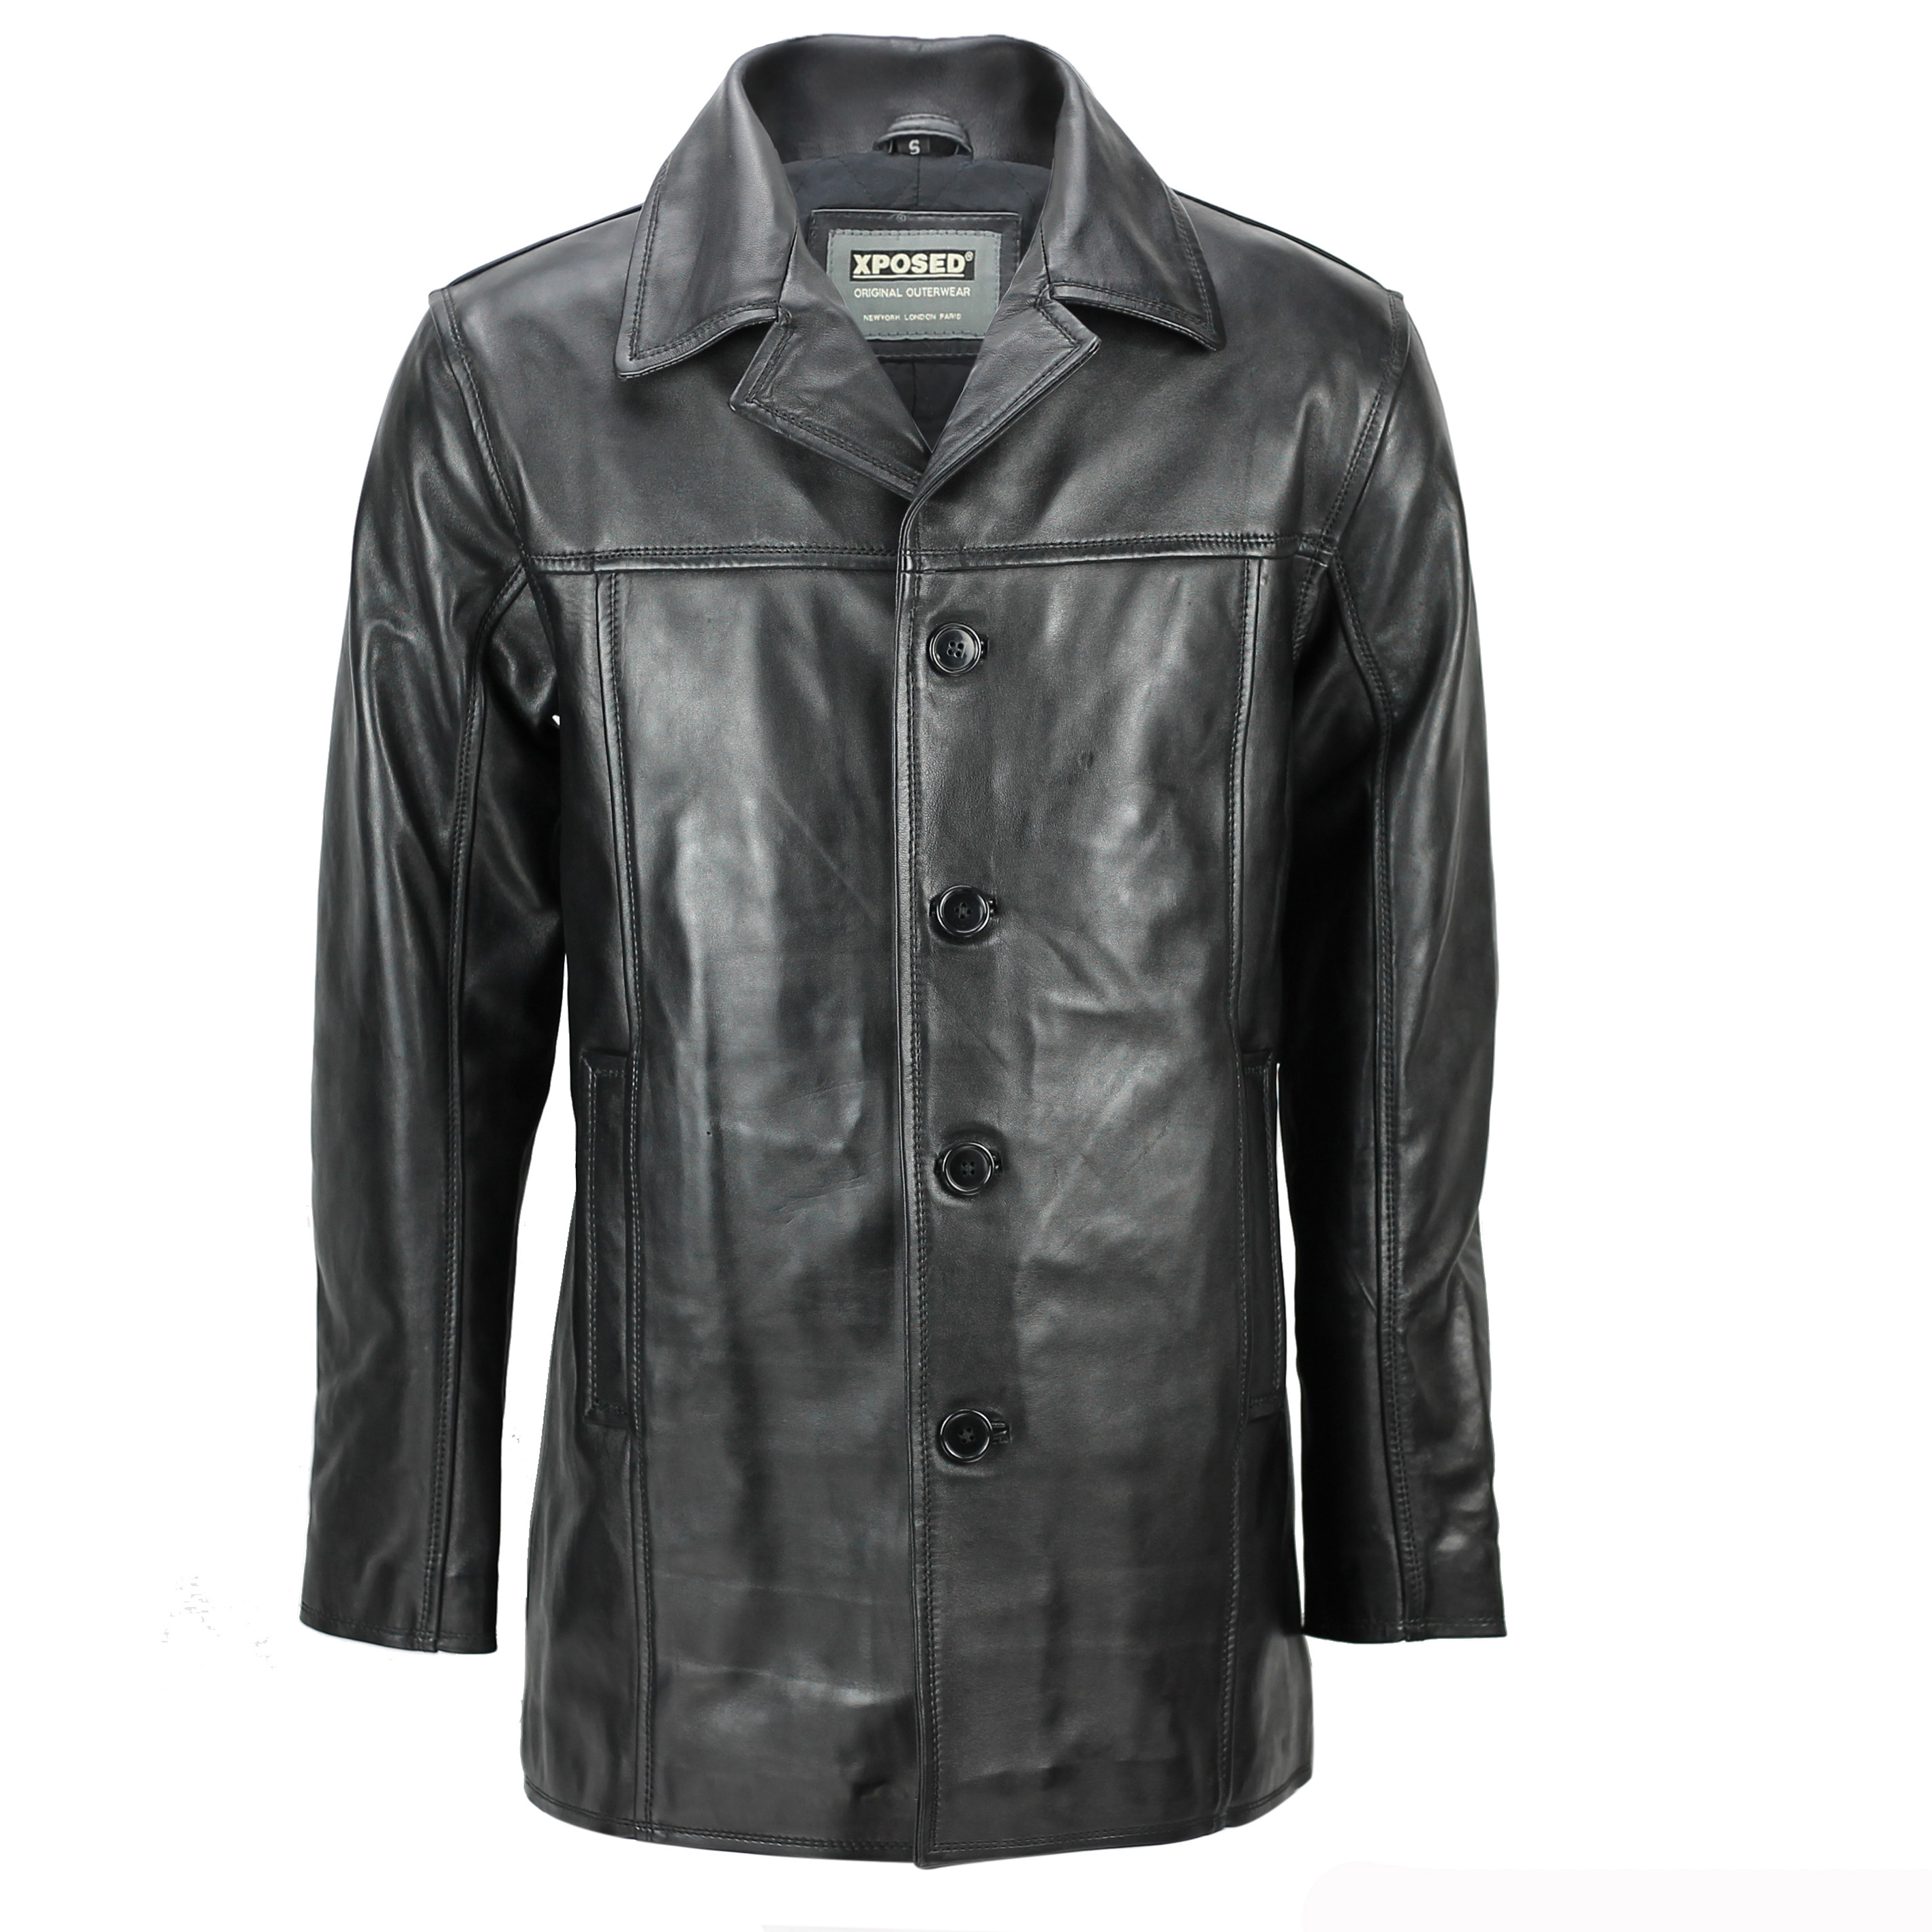 world-wide renown big clearance sale better price for Details about Mens Real Leather Mid 3/4 Length Vintage Smart Casual Button  Black Reefer Jacket